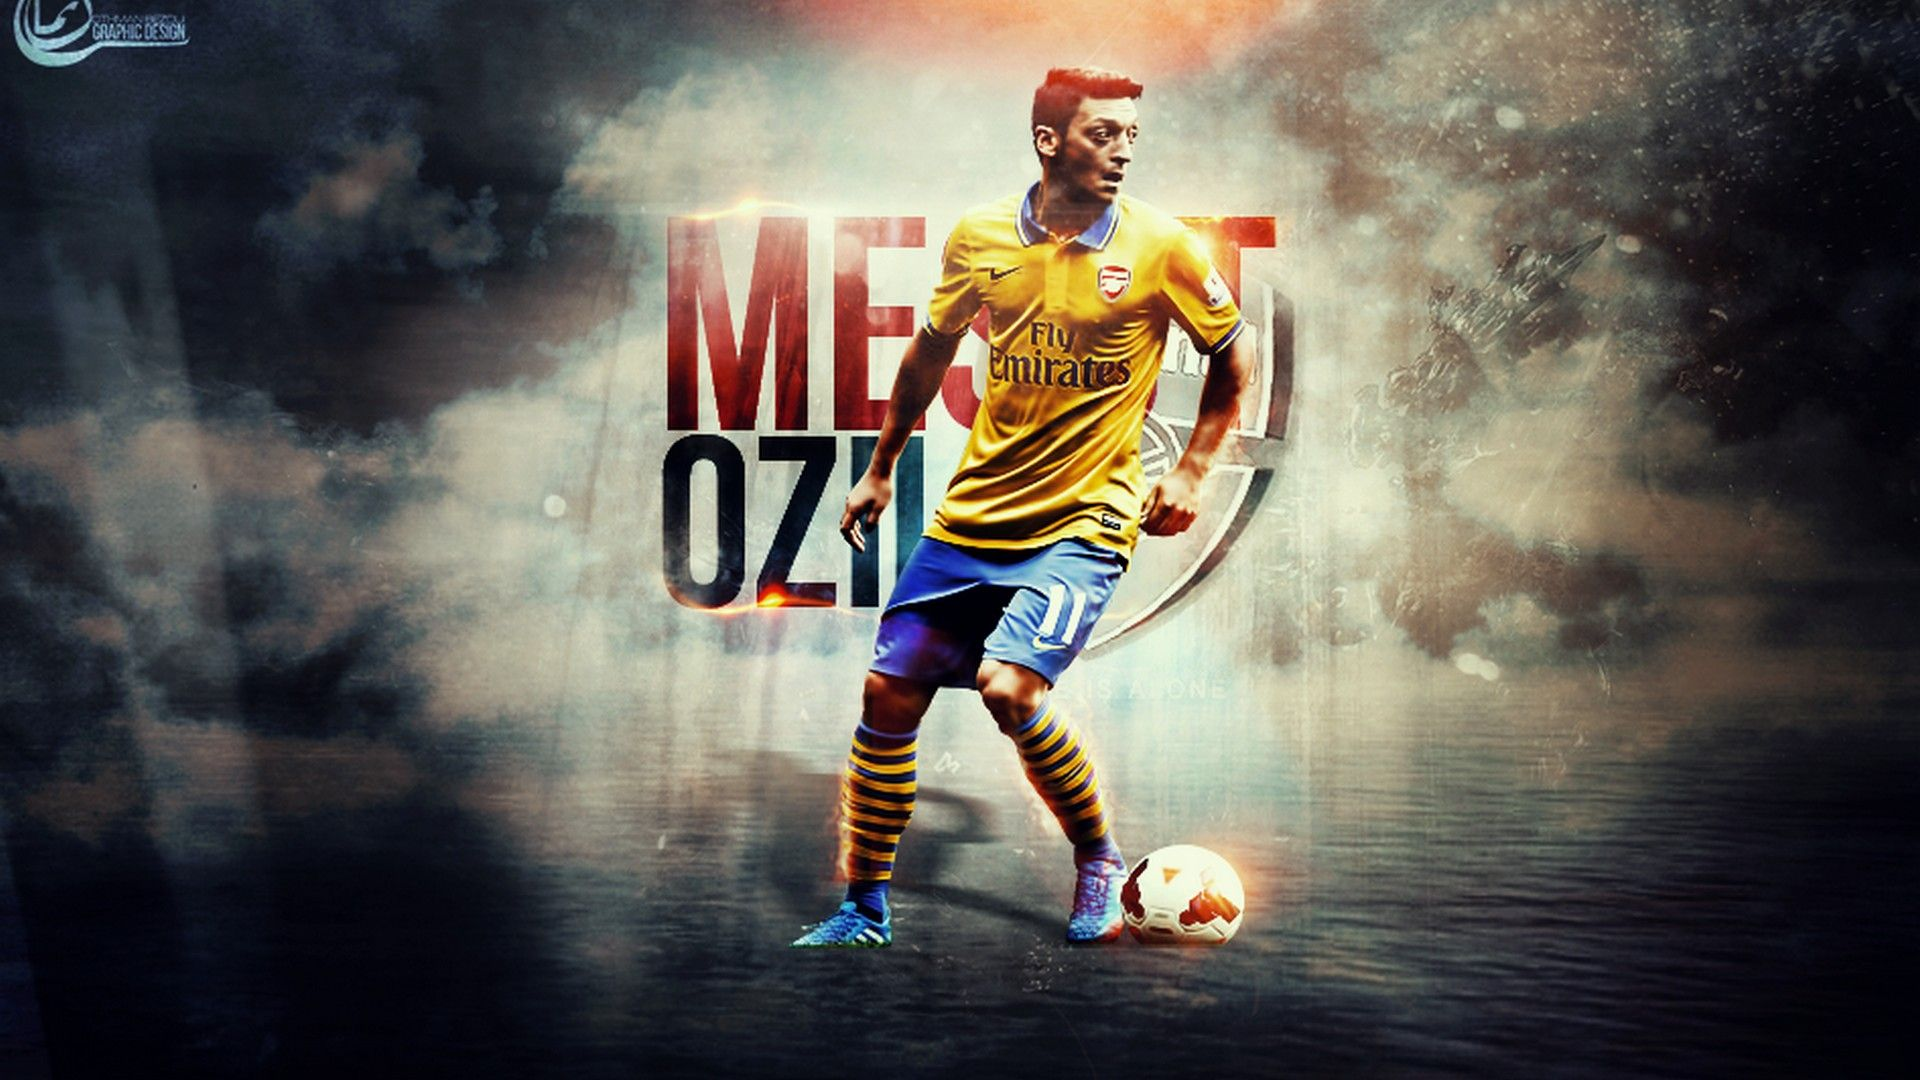 mesut ozil arsenal wallpaper 2021